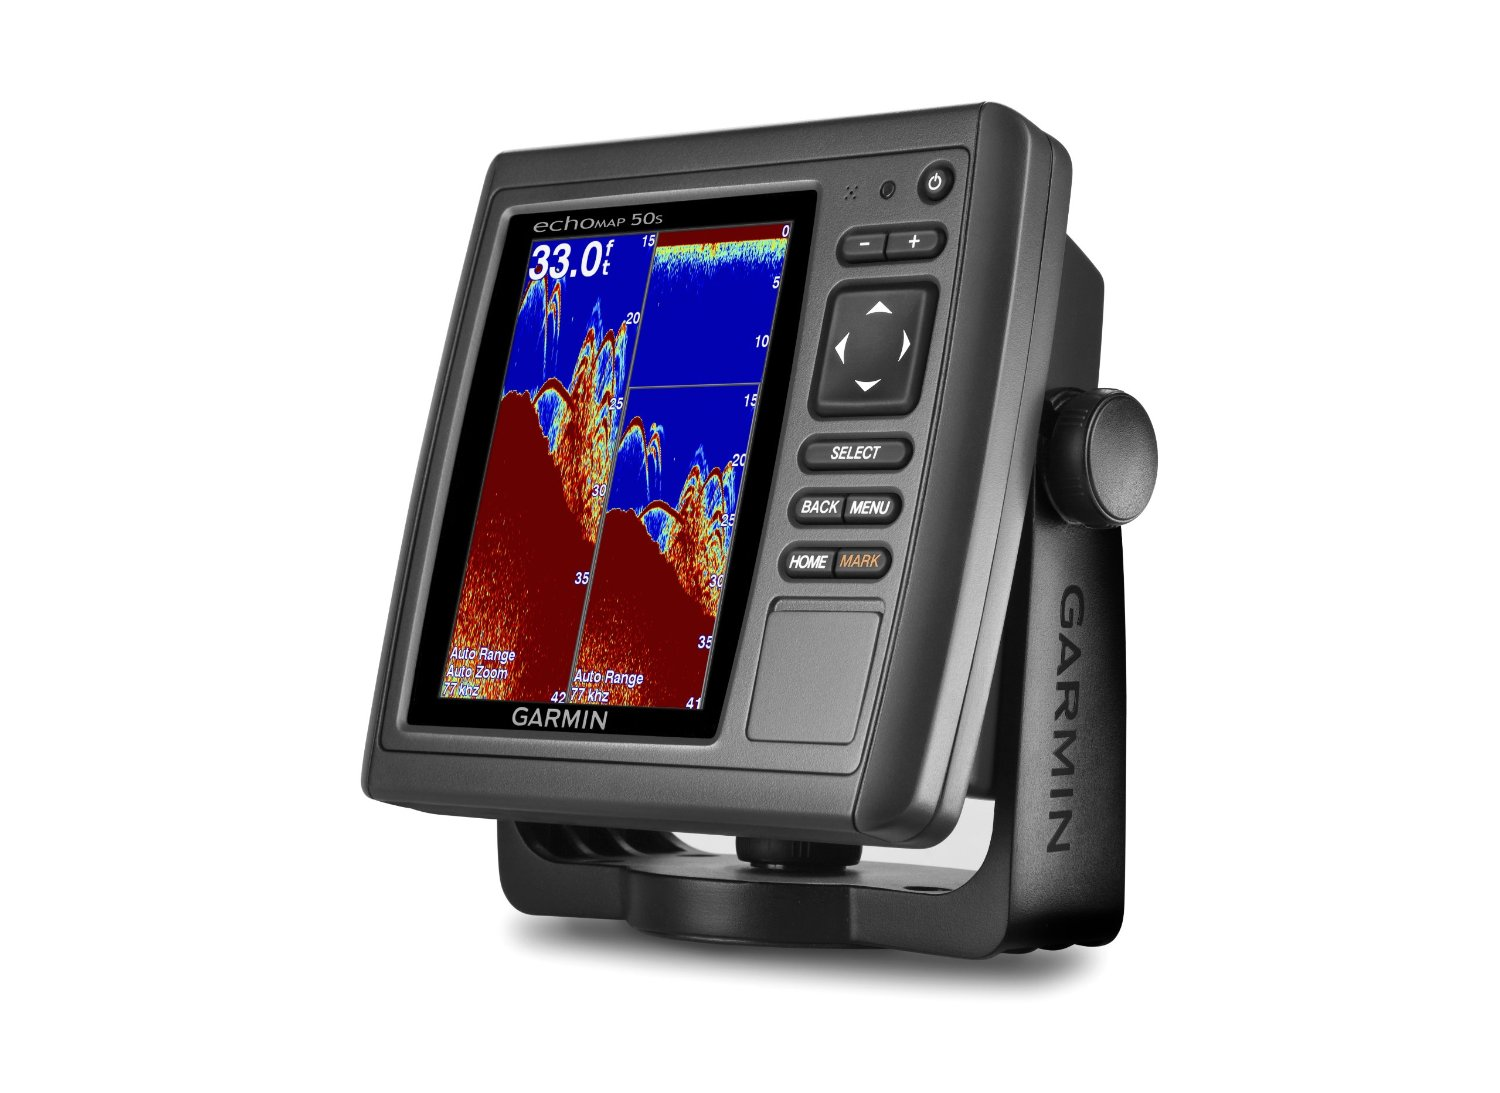 Garmin echomap 50s review fish finder guy for Fish finder reviews